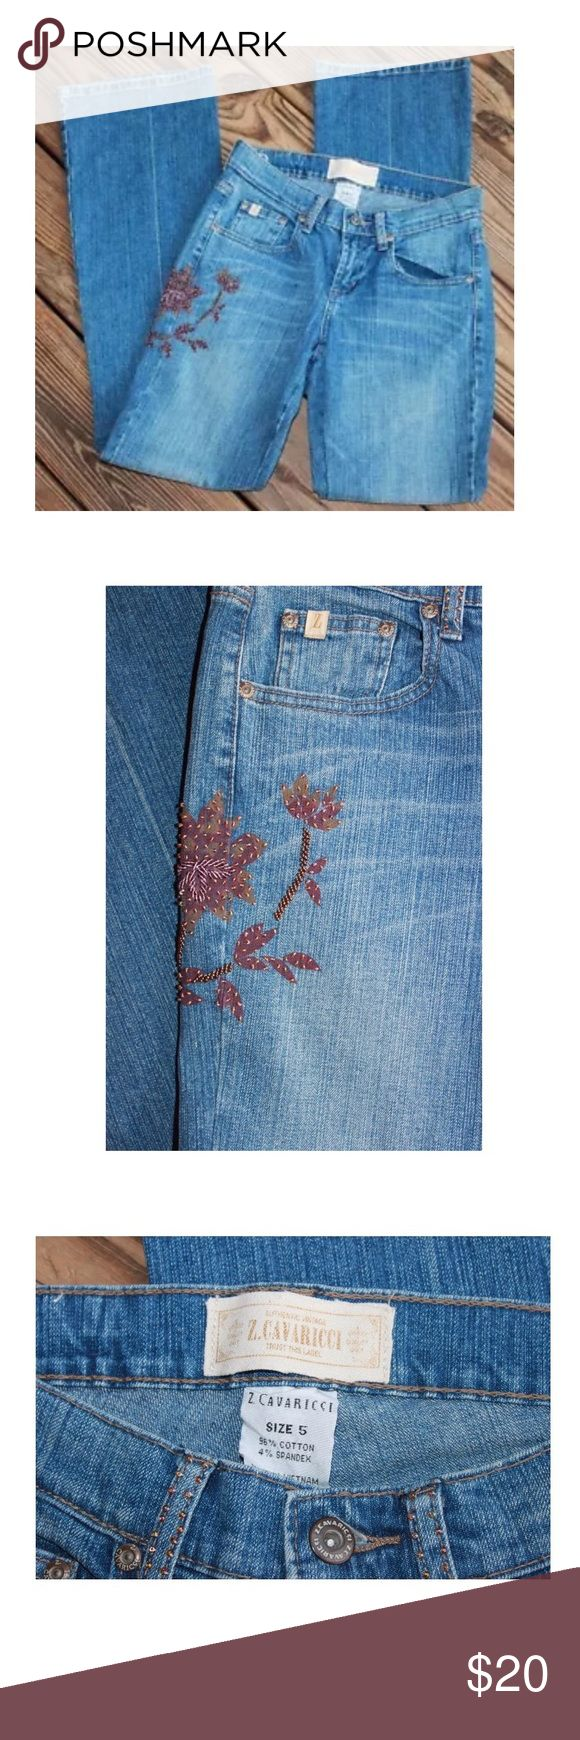 "Z Cavaricci Jeans Women's Regular Up for bid is Z Cavaricci Jeans 5 Floral Beaded Painted Medium Wash Women's Cotton Spandex AM  These jeans have no holes, stains, tears or smelly things!  :)    Measurements taken while jeans are laying flat:  Waist:  14""  Drop:  7.5""  Inseam:  32"" Jeans Straight Leg"